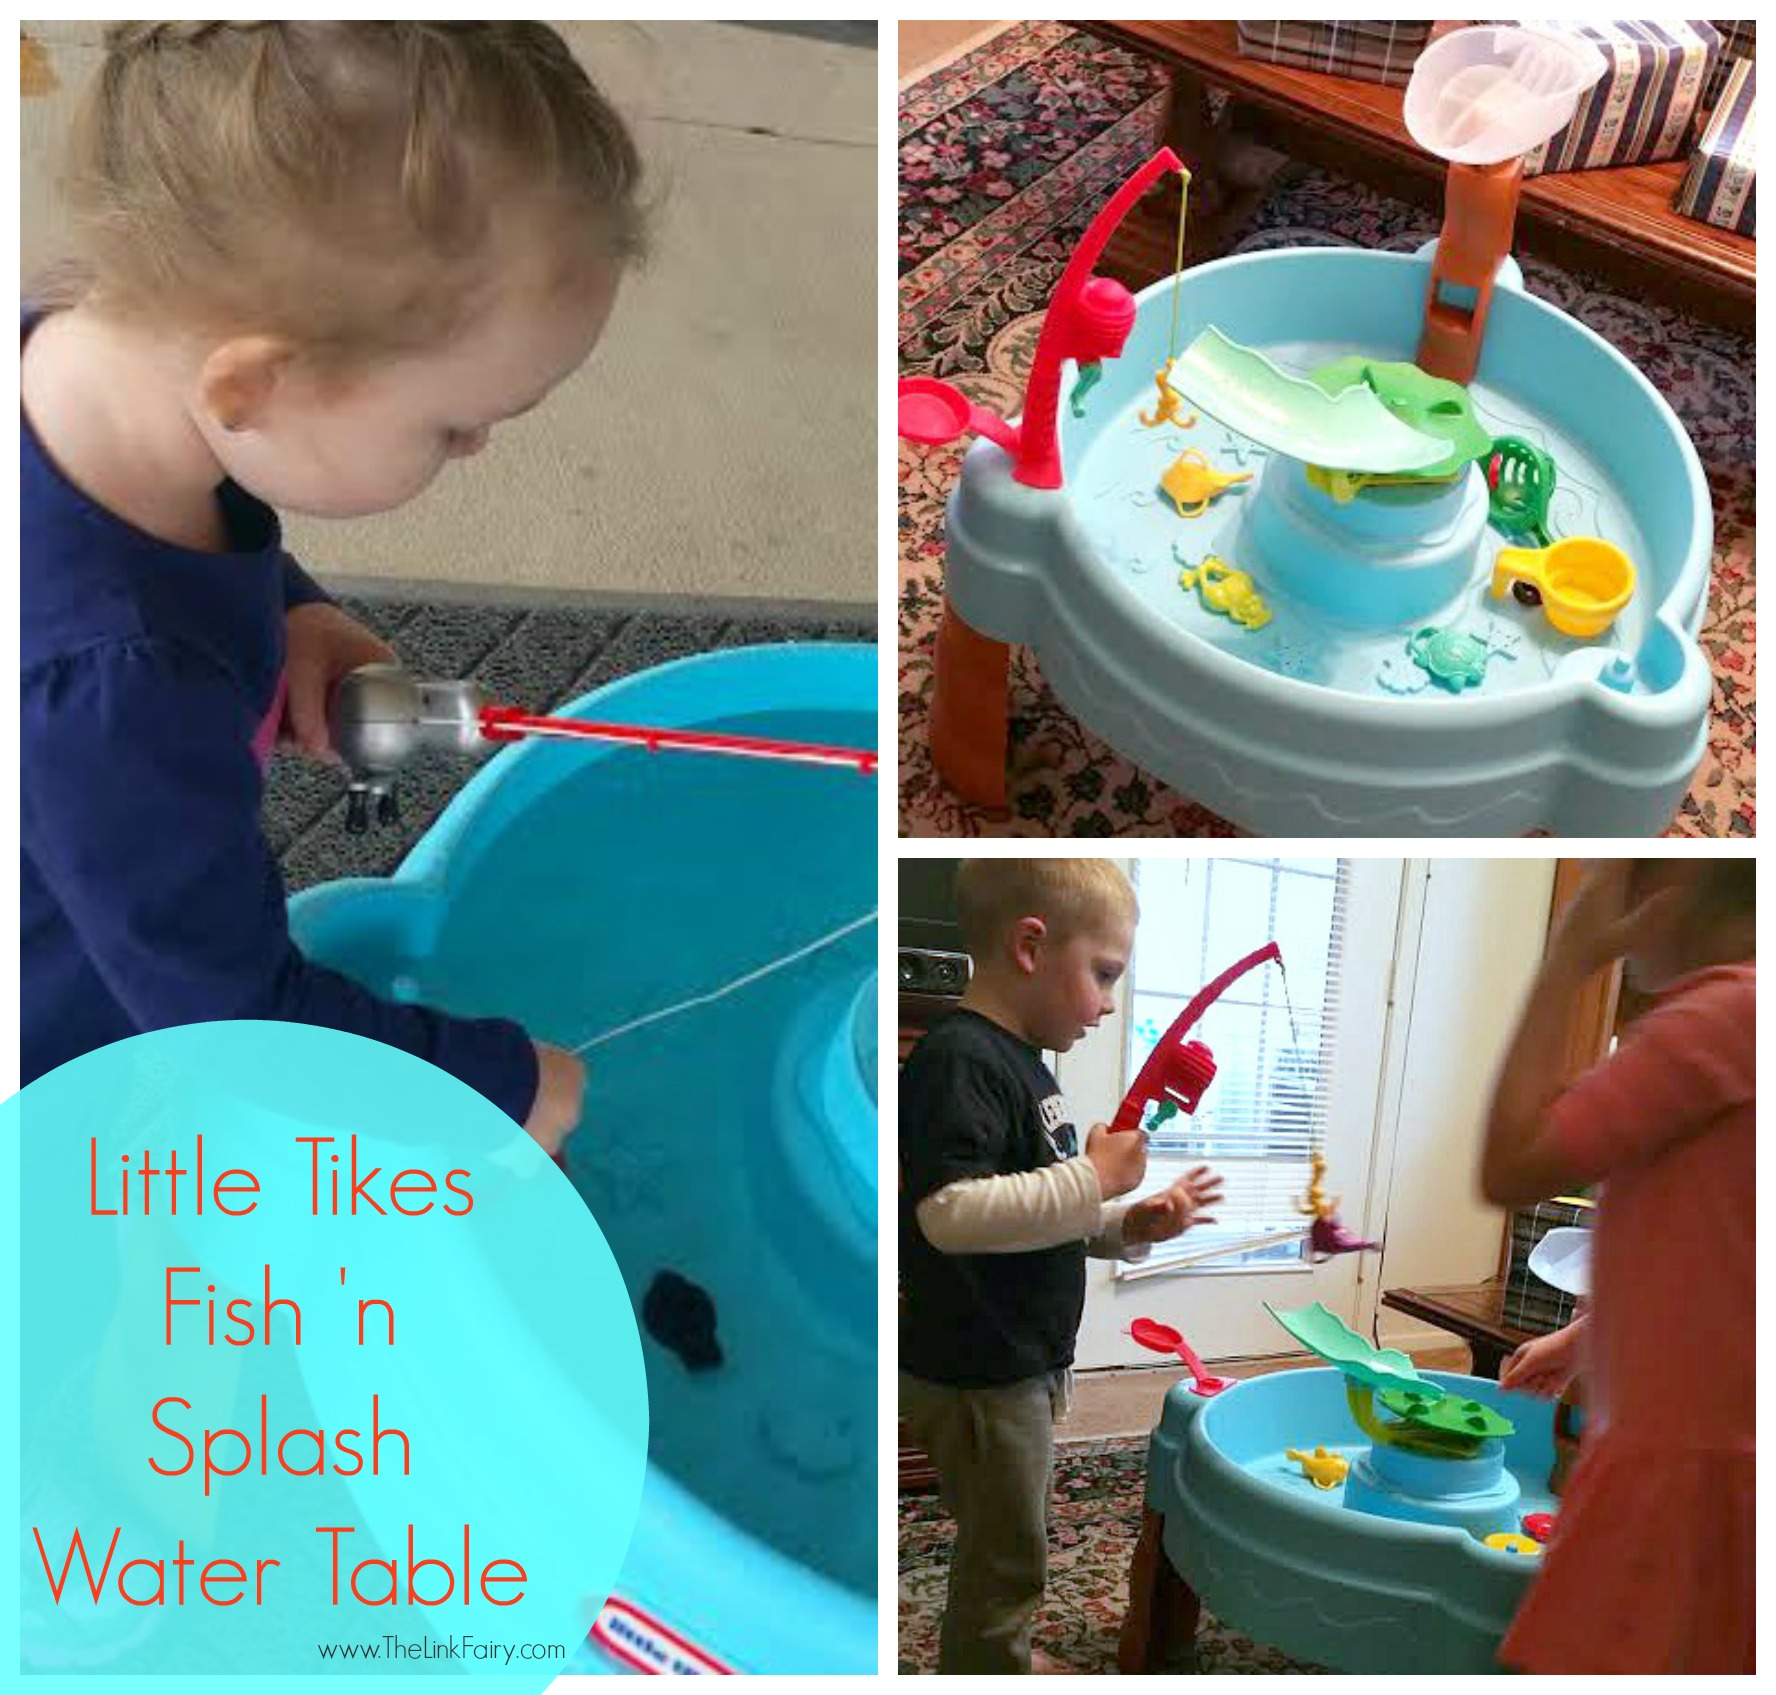 Little Tikes Fish n Splash Water Table Review